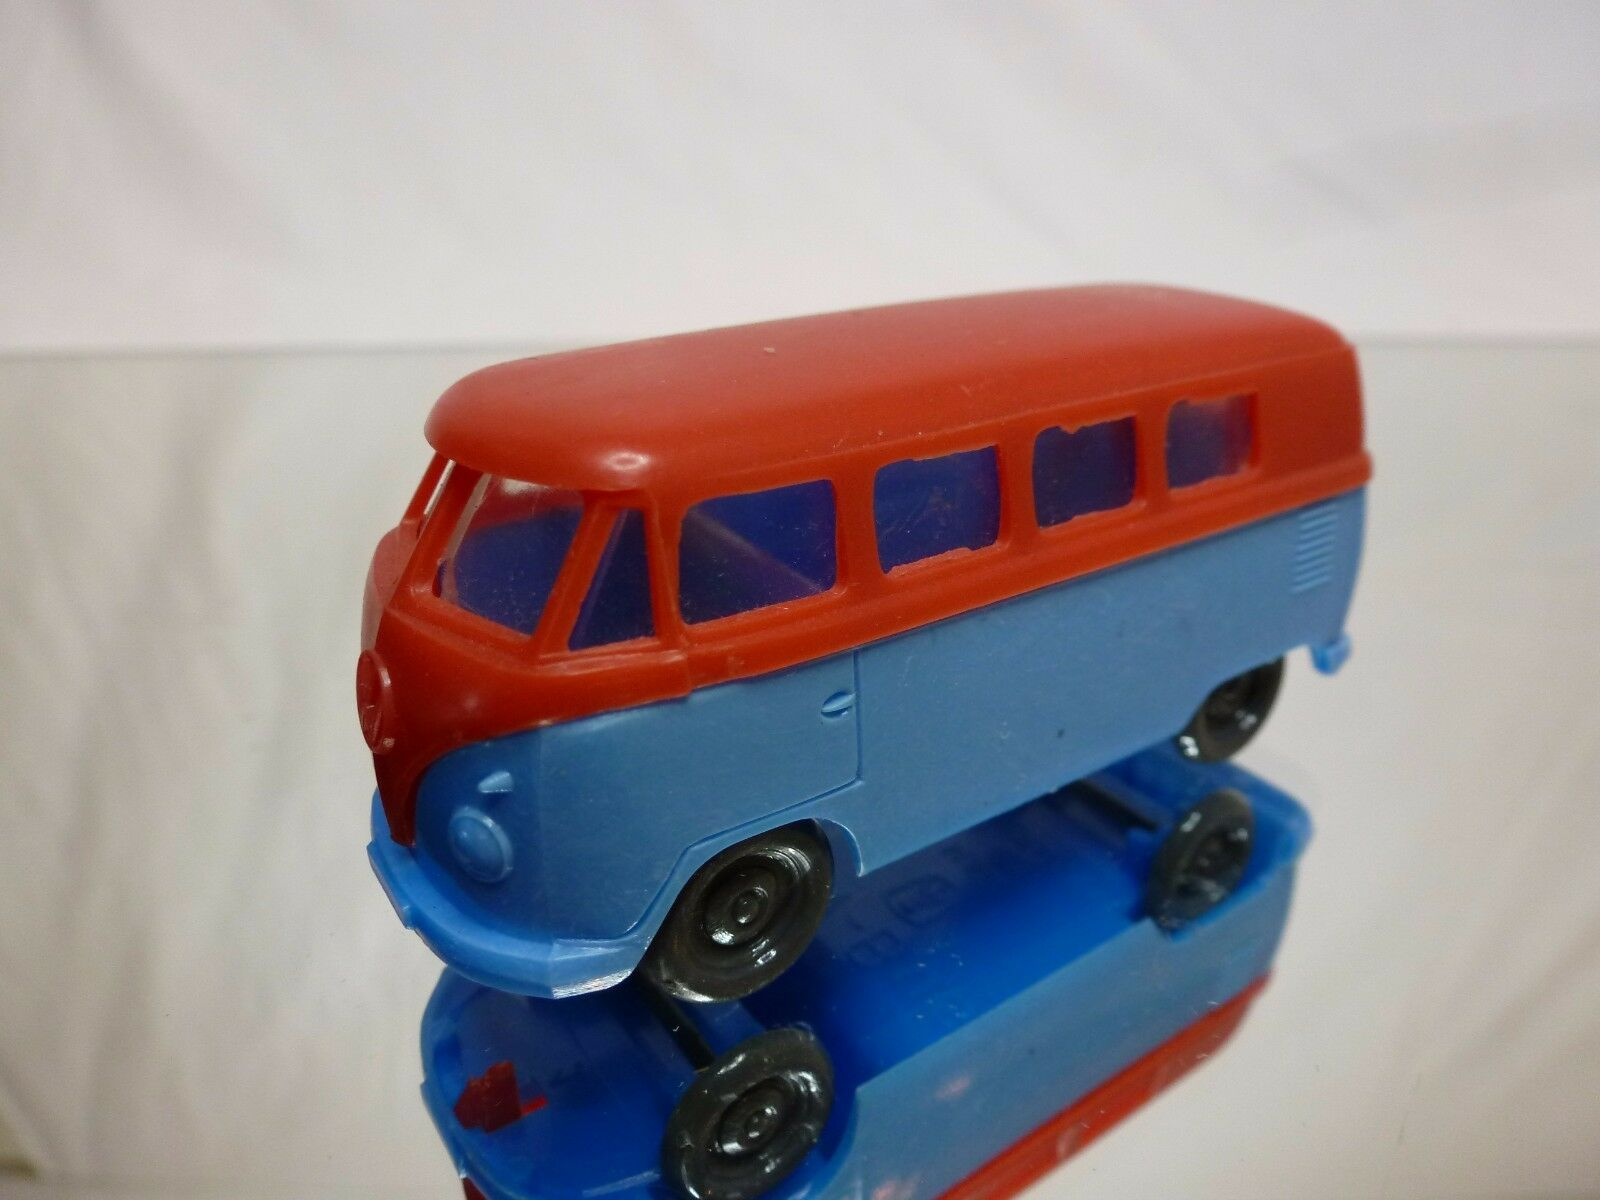 HAMMER GERMANY GERMANY GERMANY VW VOLKSWAGEN T1 BUS - blueE L7.0cm - GOOD CONDITION - PLASTIC 108443